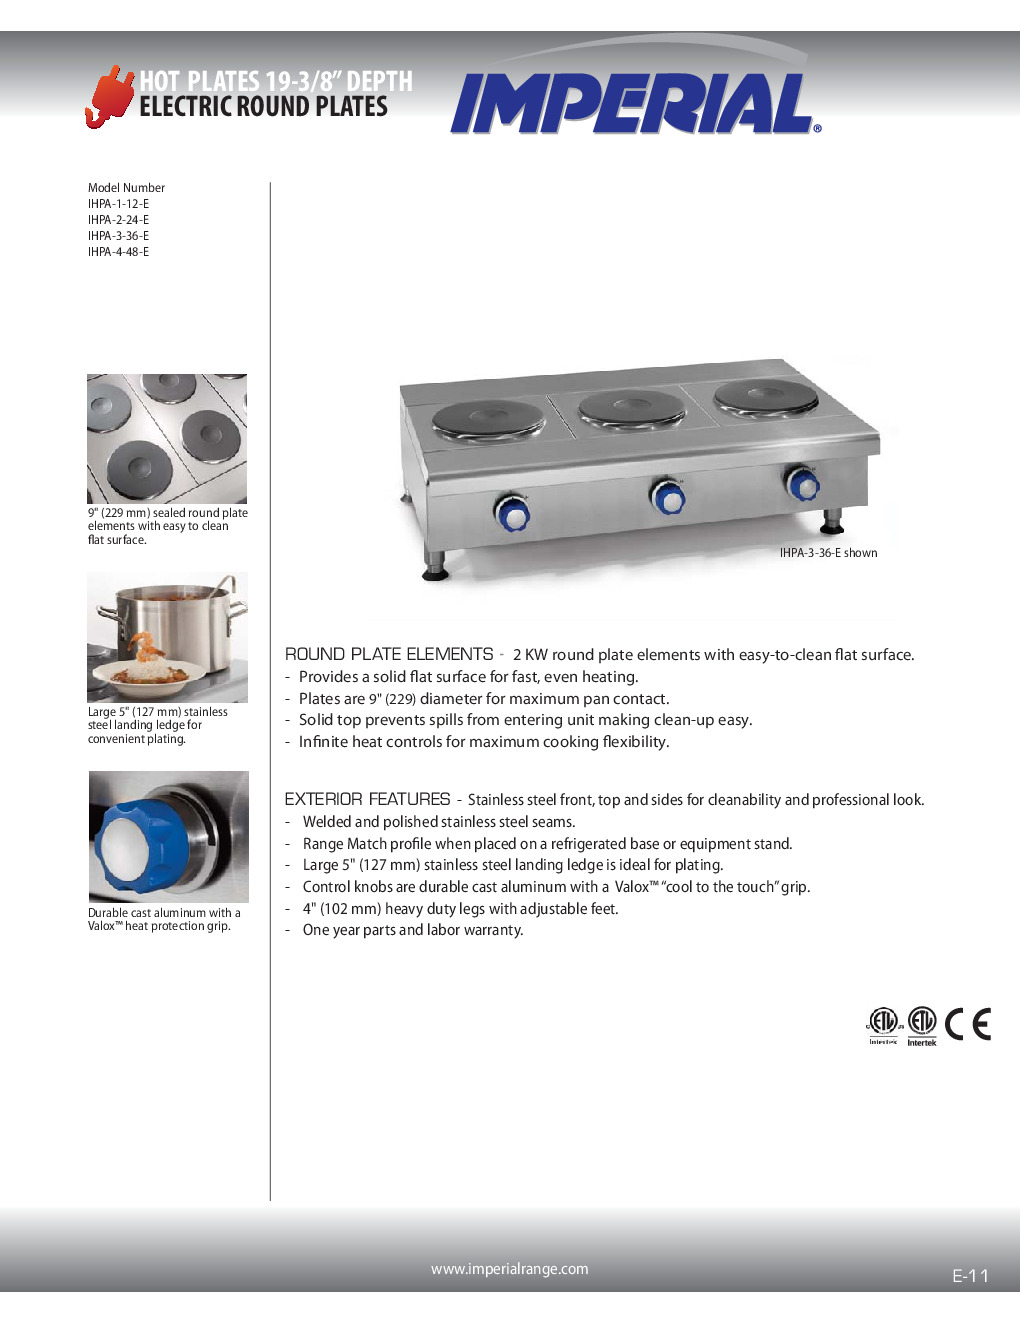 Imperial IHPA-4-48-E Electric Countertop Hotplate